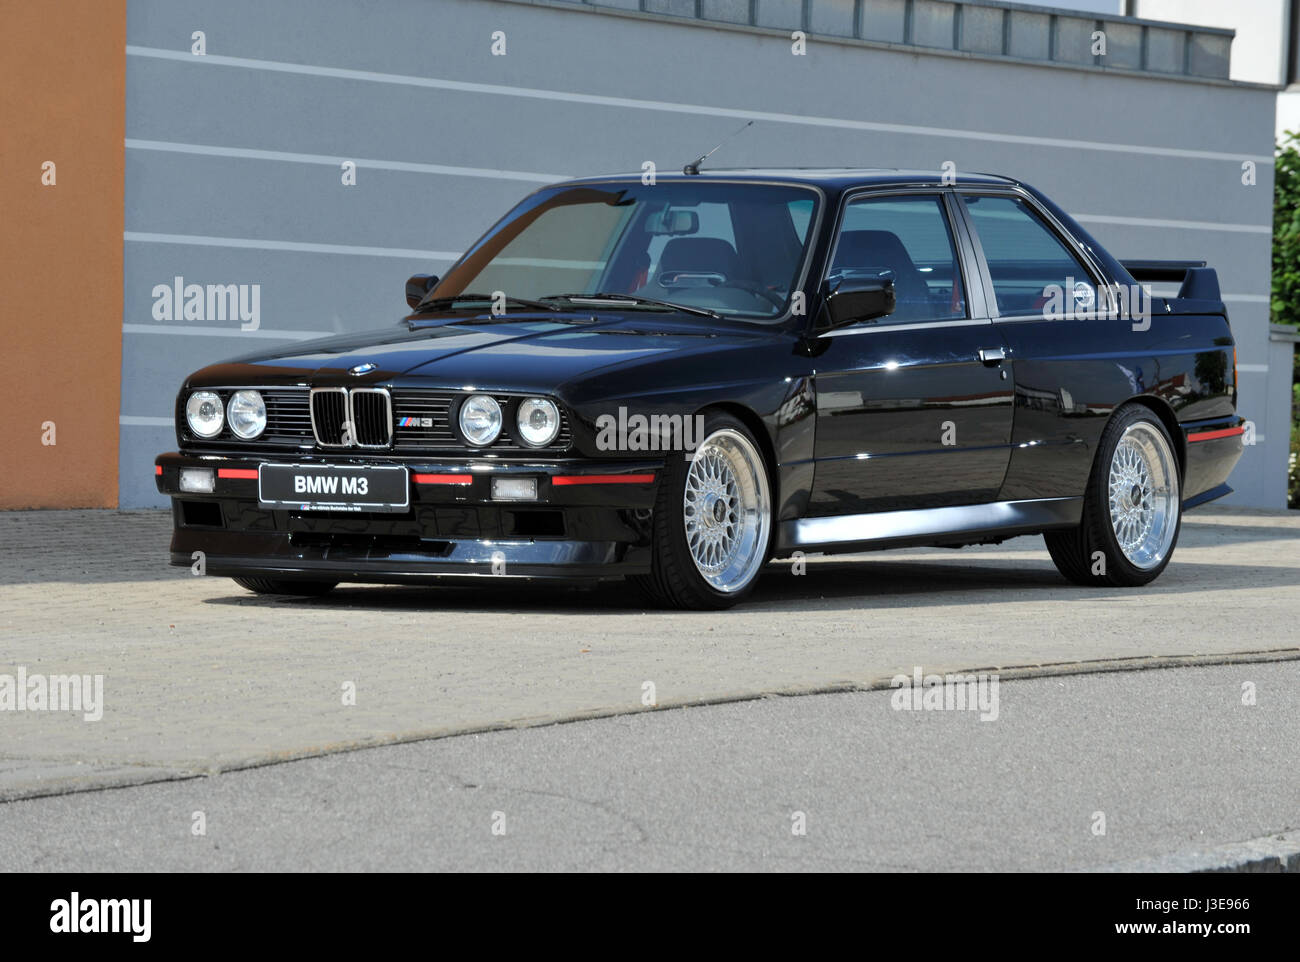 BMW E30 Shape M3 German Super Saloon Car   Stock Image